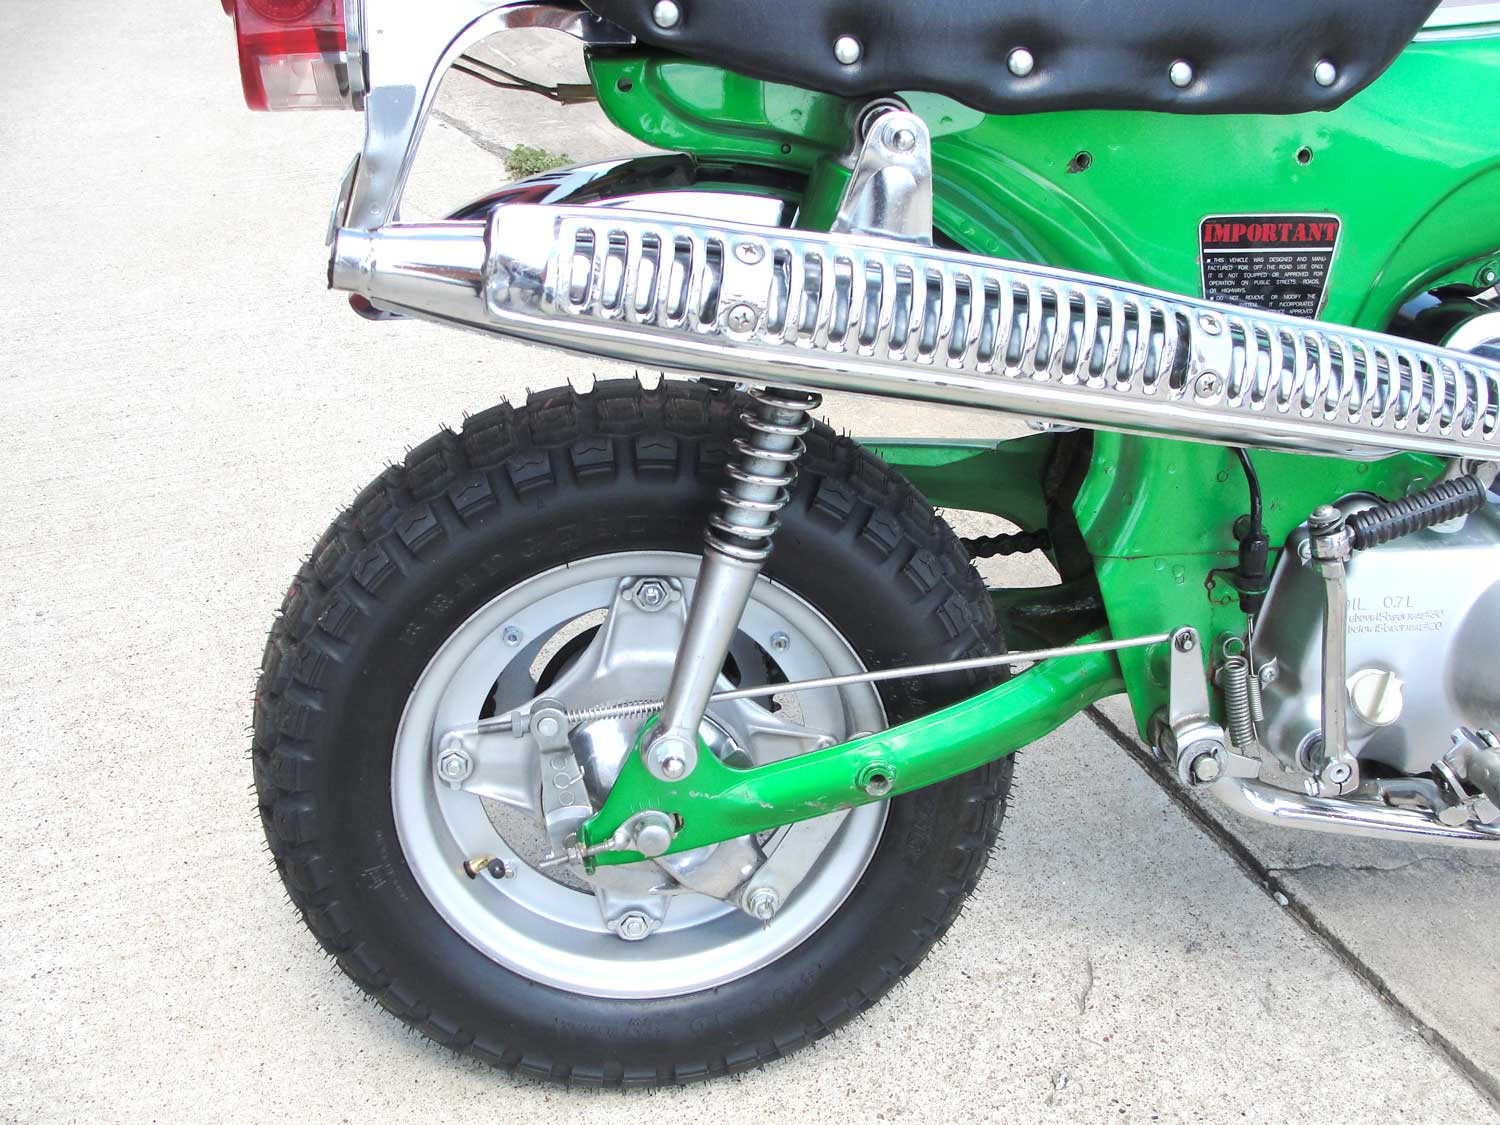 Bfs Ct70 H Ko Original Shriner Bike 899 Miles Emerald Green With 1970 Honda Spark Plug If You Have Any Question About This Other Of The Bikes That We Will Be Listing Please Do Not Hesitate To Reach Out Price 467500 Sold